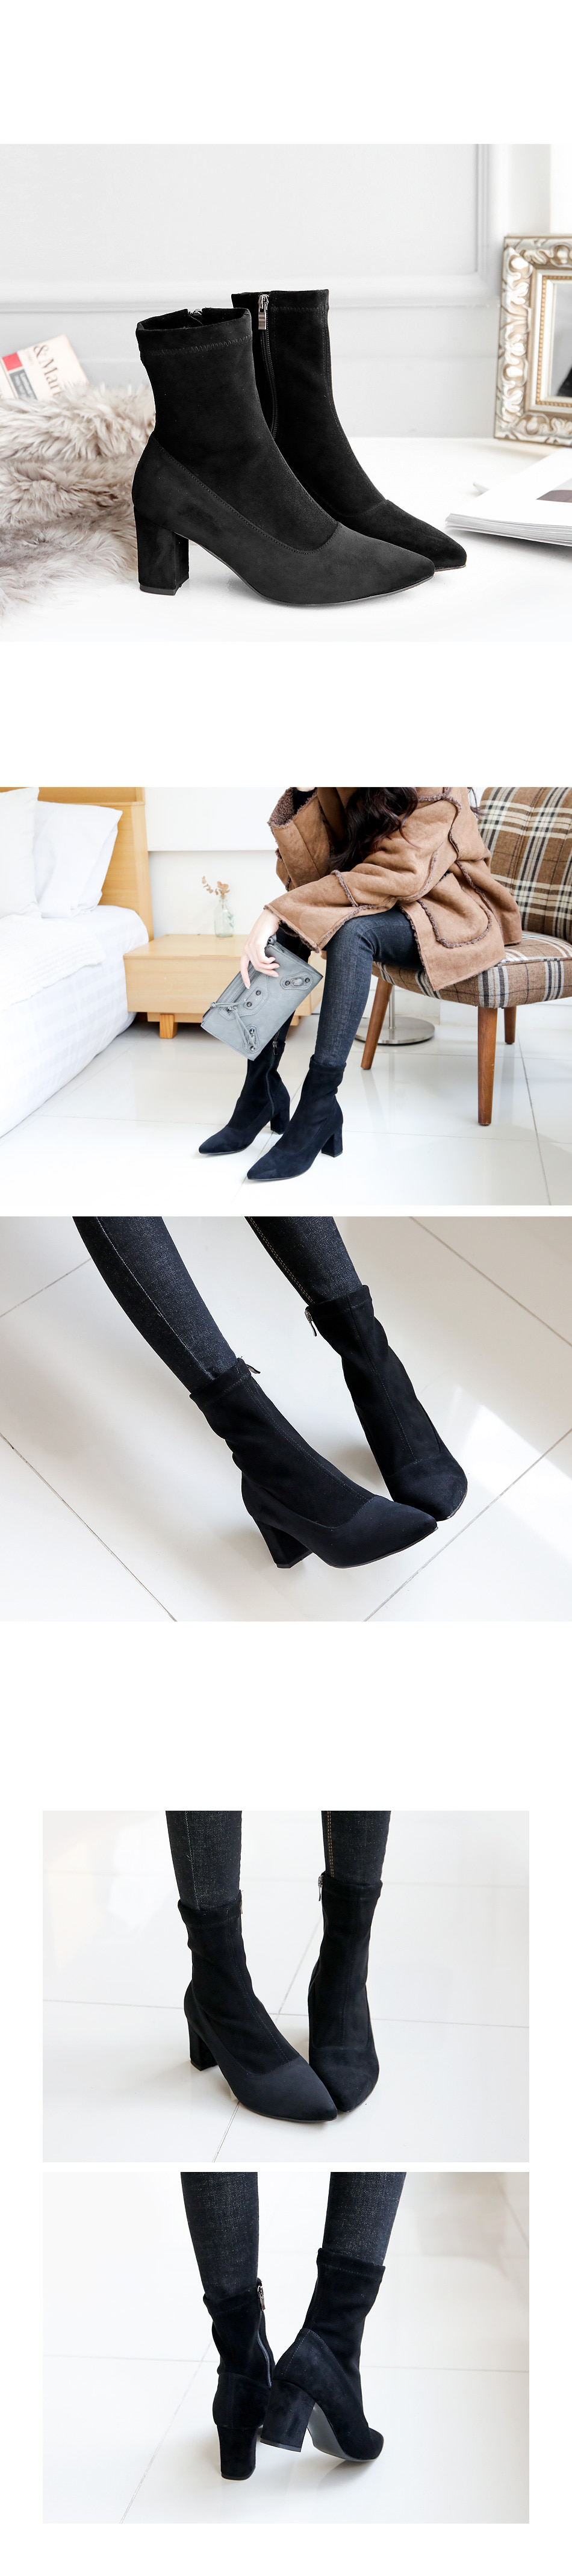 Datsu Sachs Ankle Boots 4,7cm